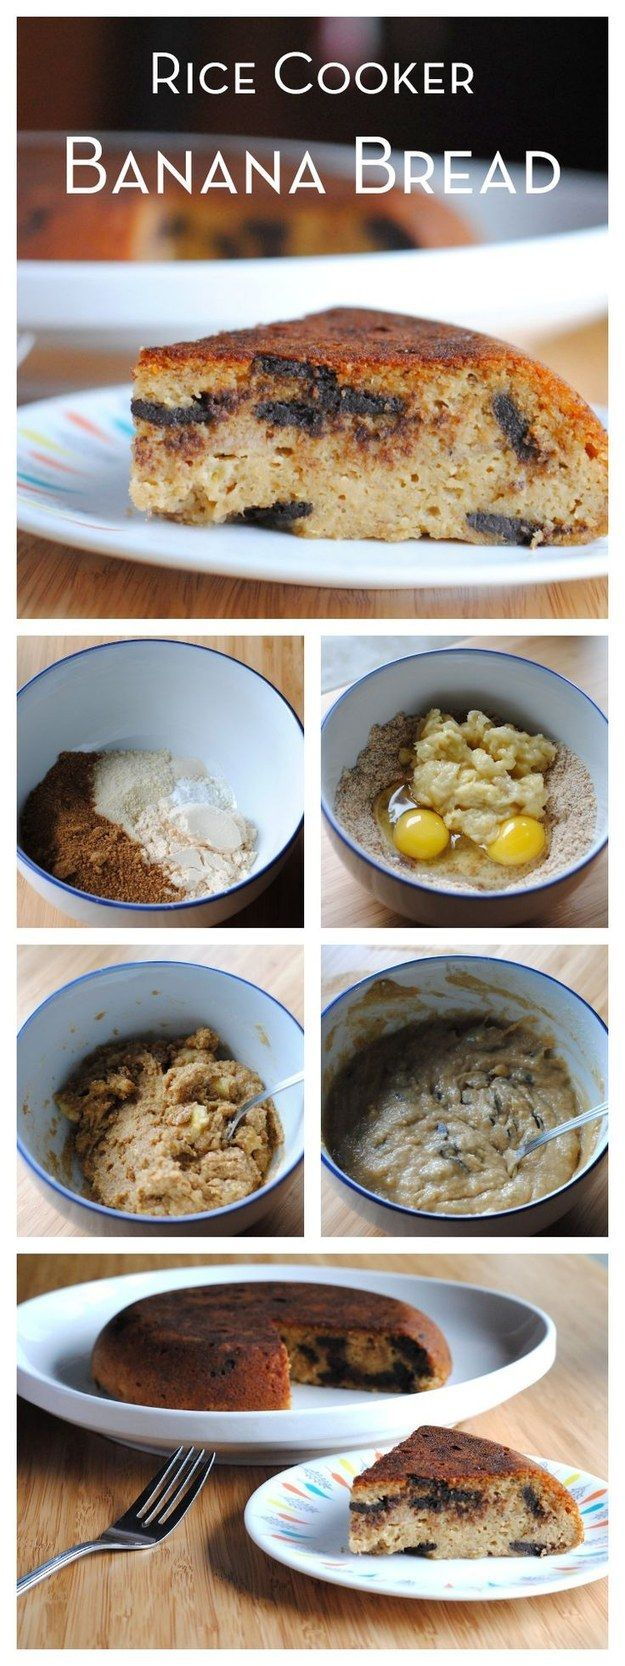 Rice Cooker Banana Bread | 21 Things You Can Make In A Rice Cooker Besides Rice